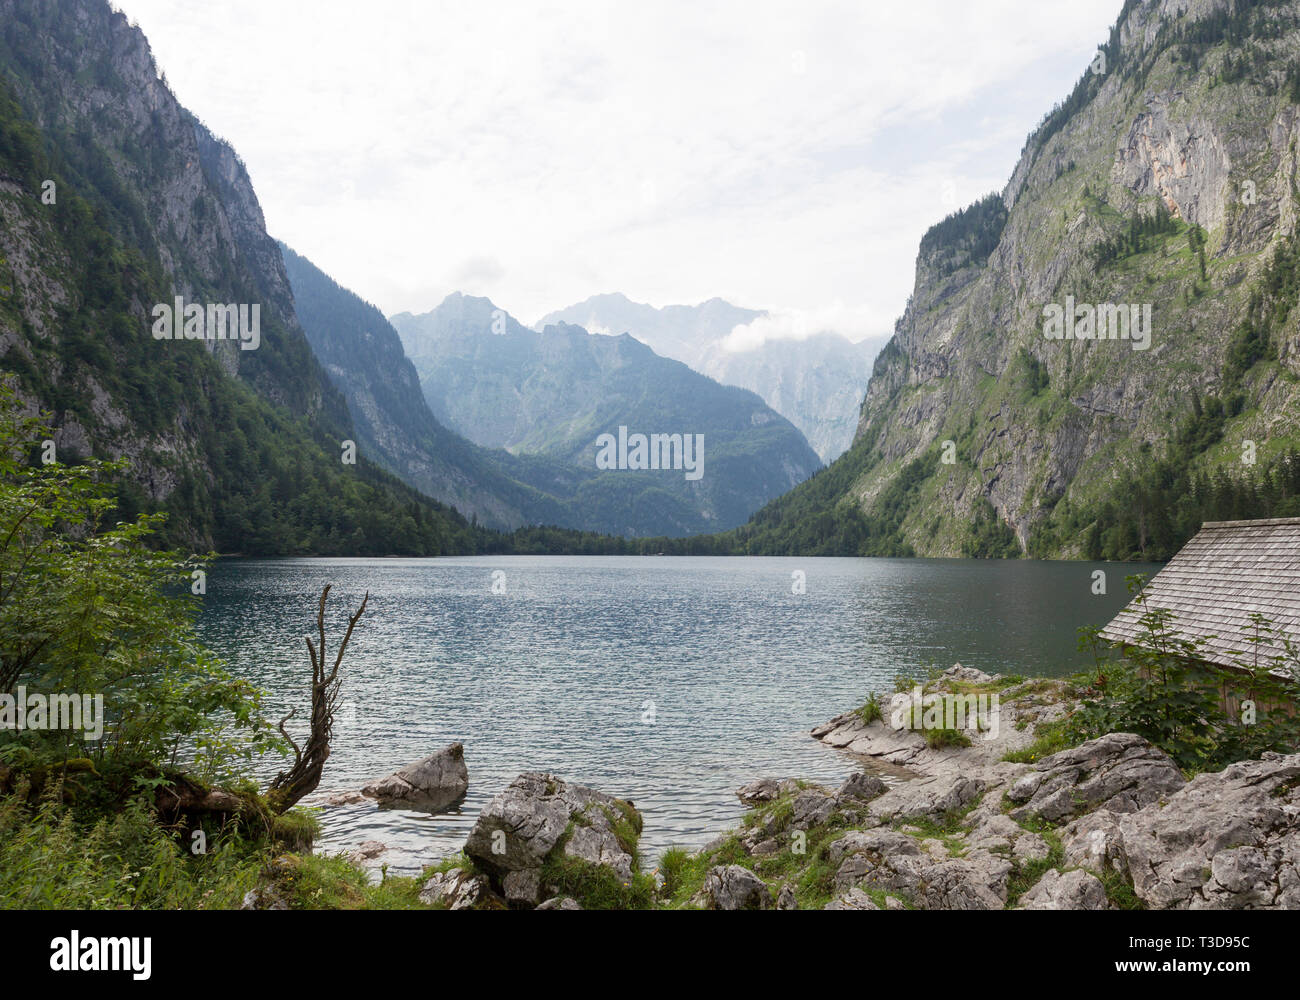 Obersee - Stock Image